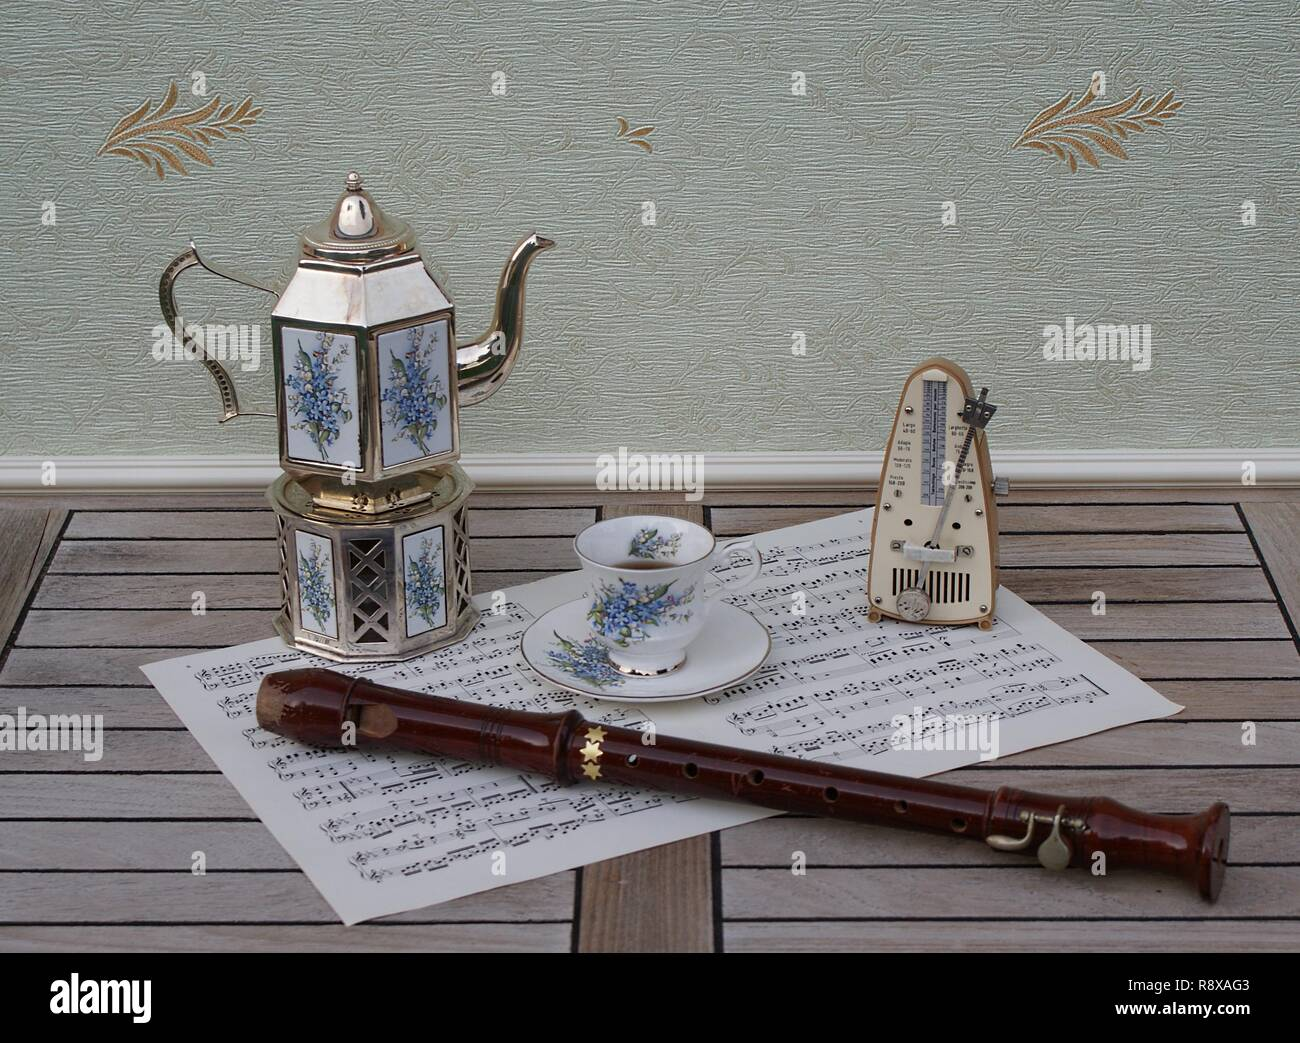 English teacup and saucer, silver-plated teapot on a silver stove, with floral decor, metronome for music and a block flute on a sheet of music - Stock Image